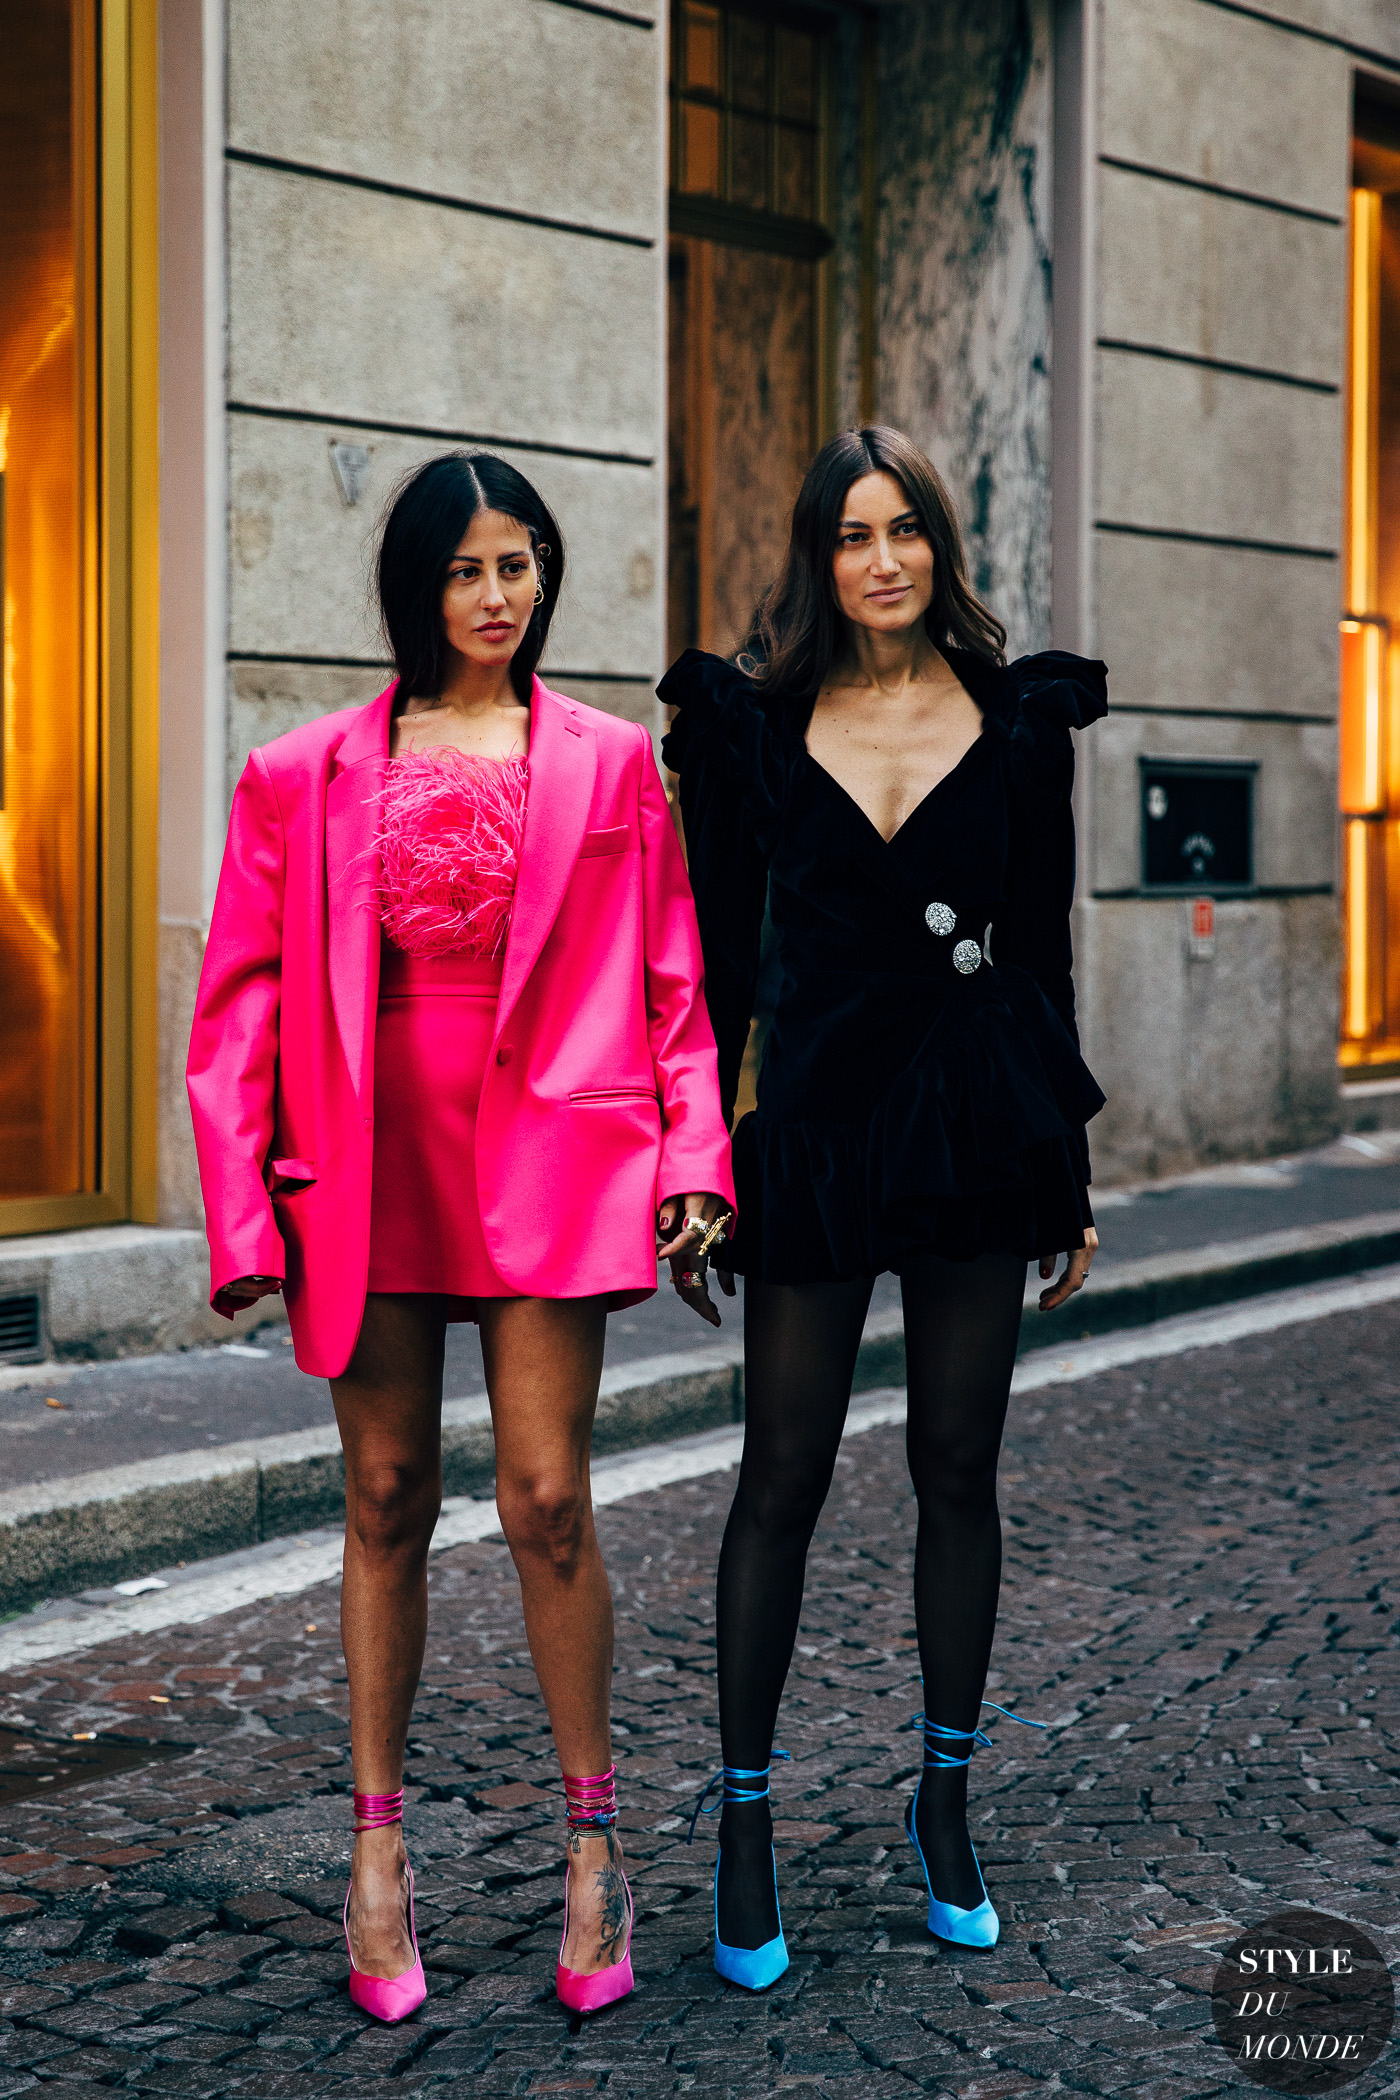 Gilda Ambrosio and Giorgia Tordini by STYLEDUMONDE Street Style Fashion Photography20190221_48A4318